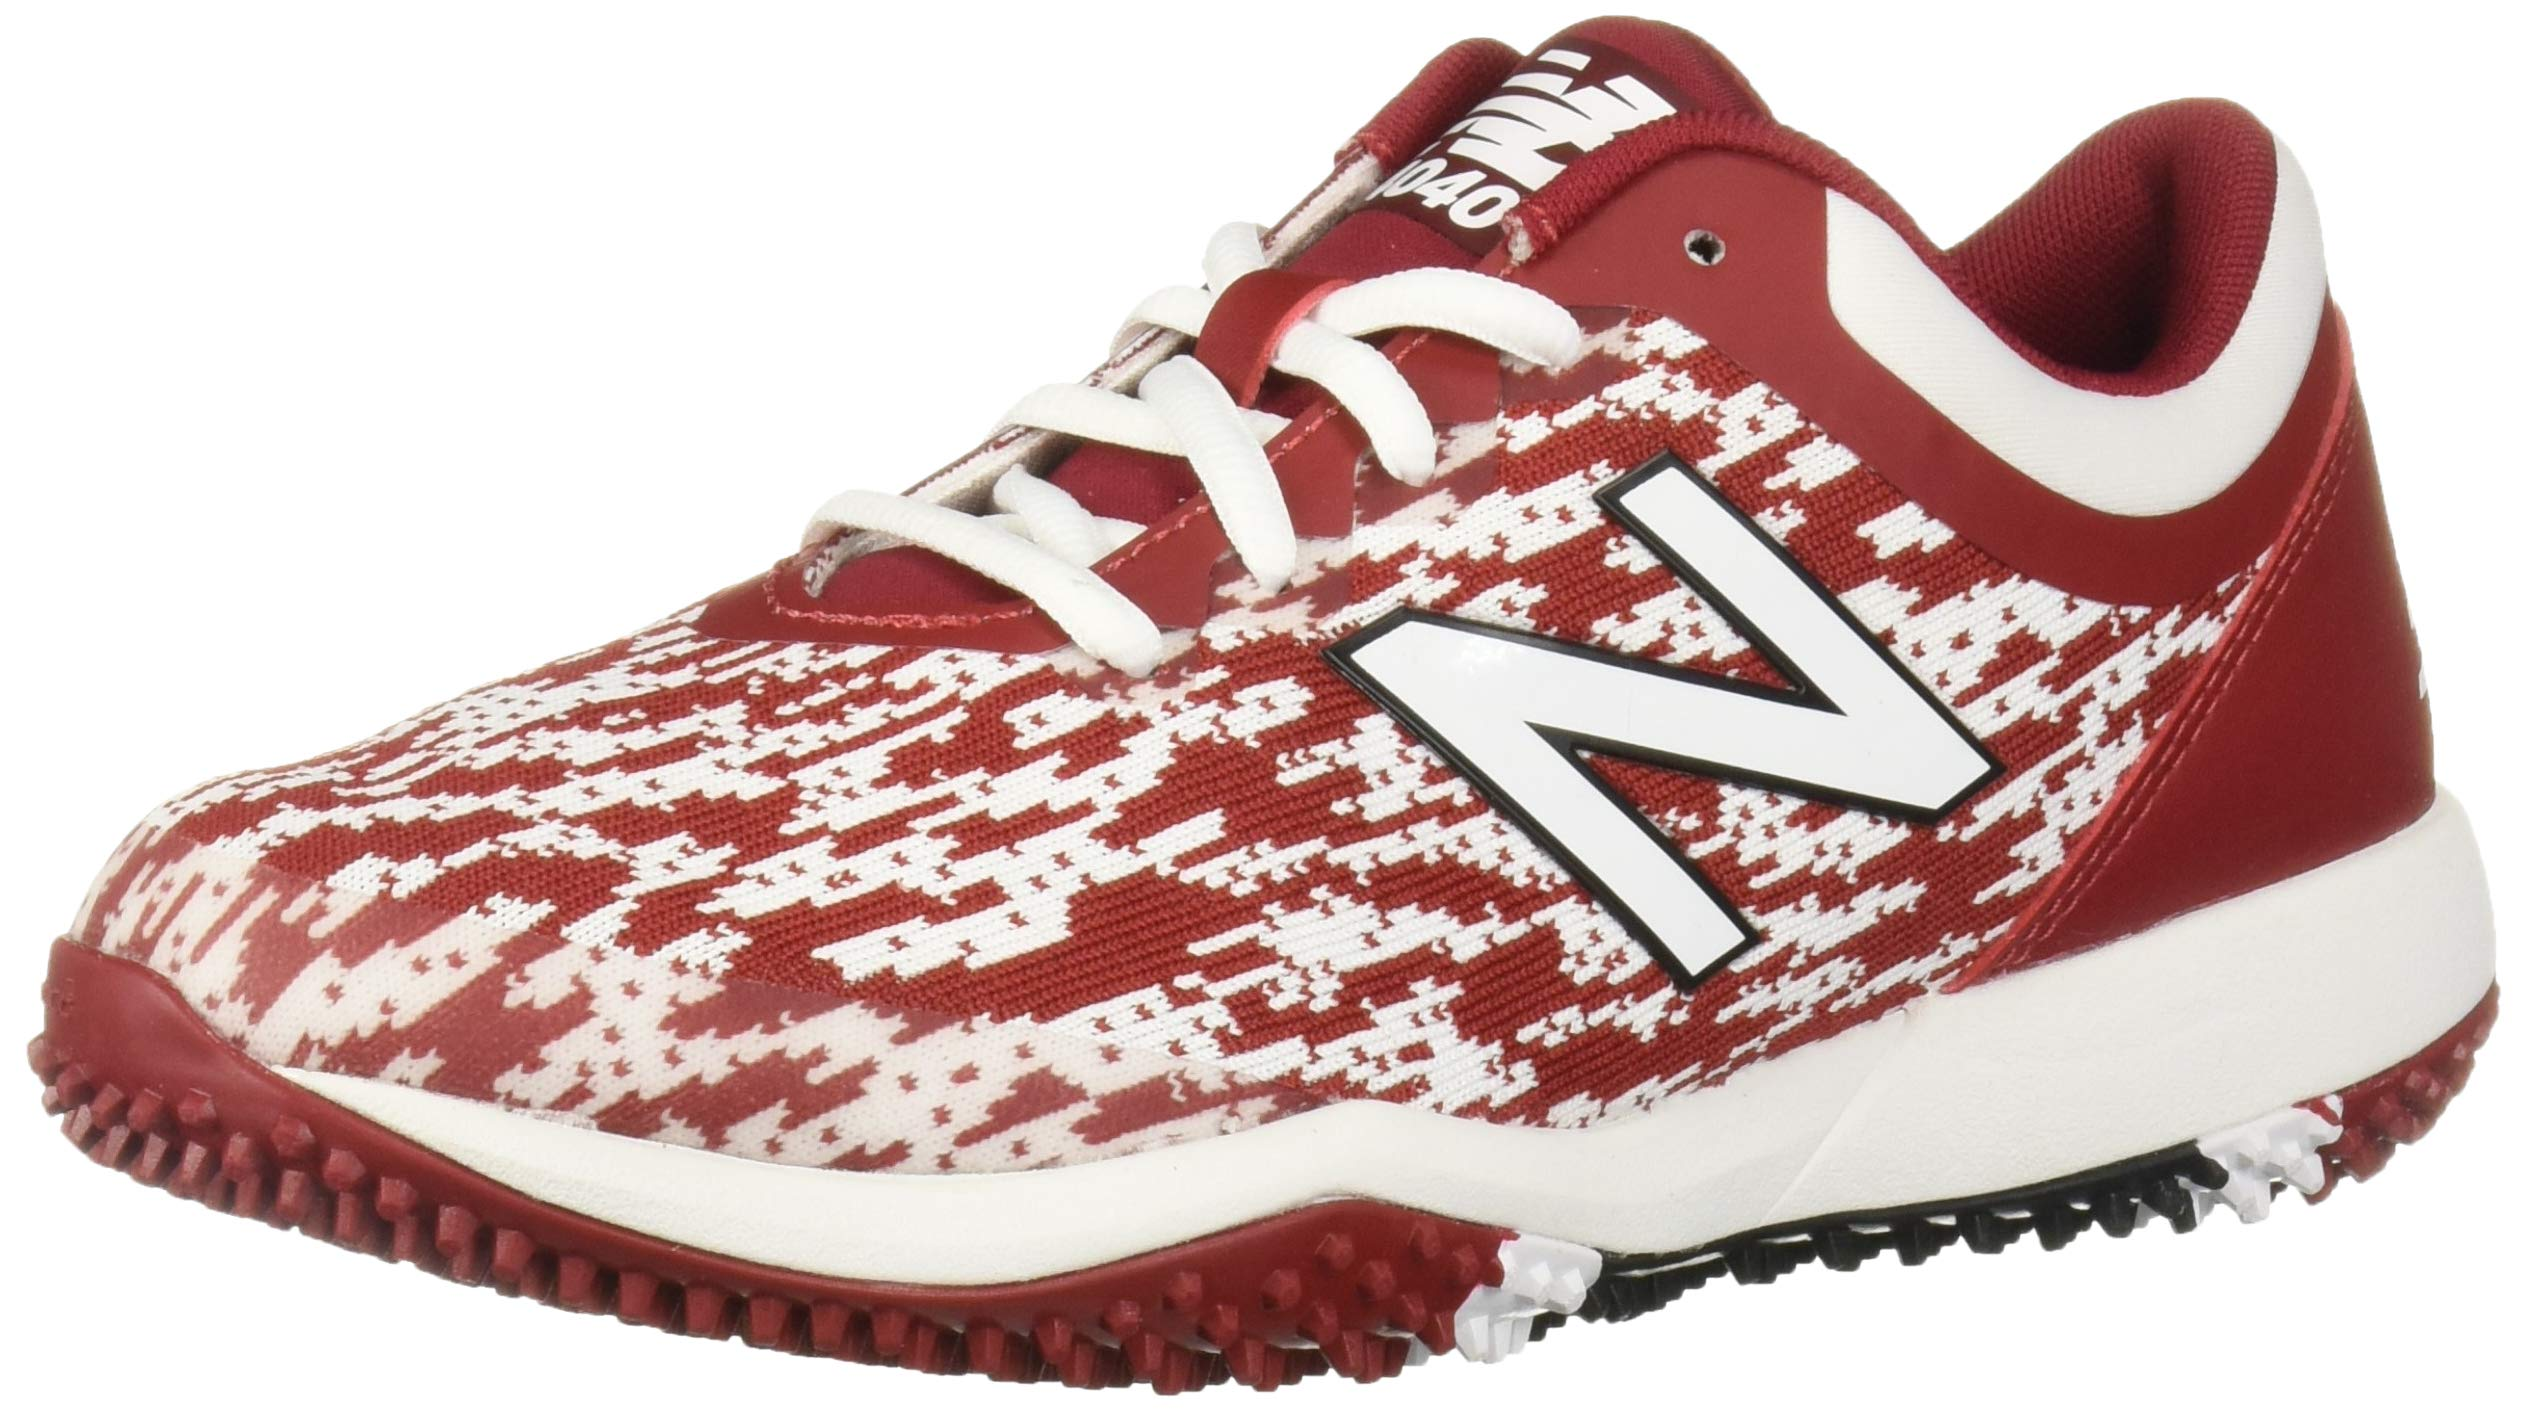 New Balance Men's 4040v5 Turf Track and Field Shoe, Maroon/White, 5 D US